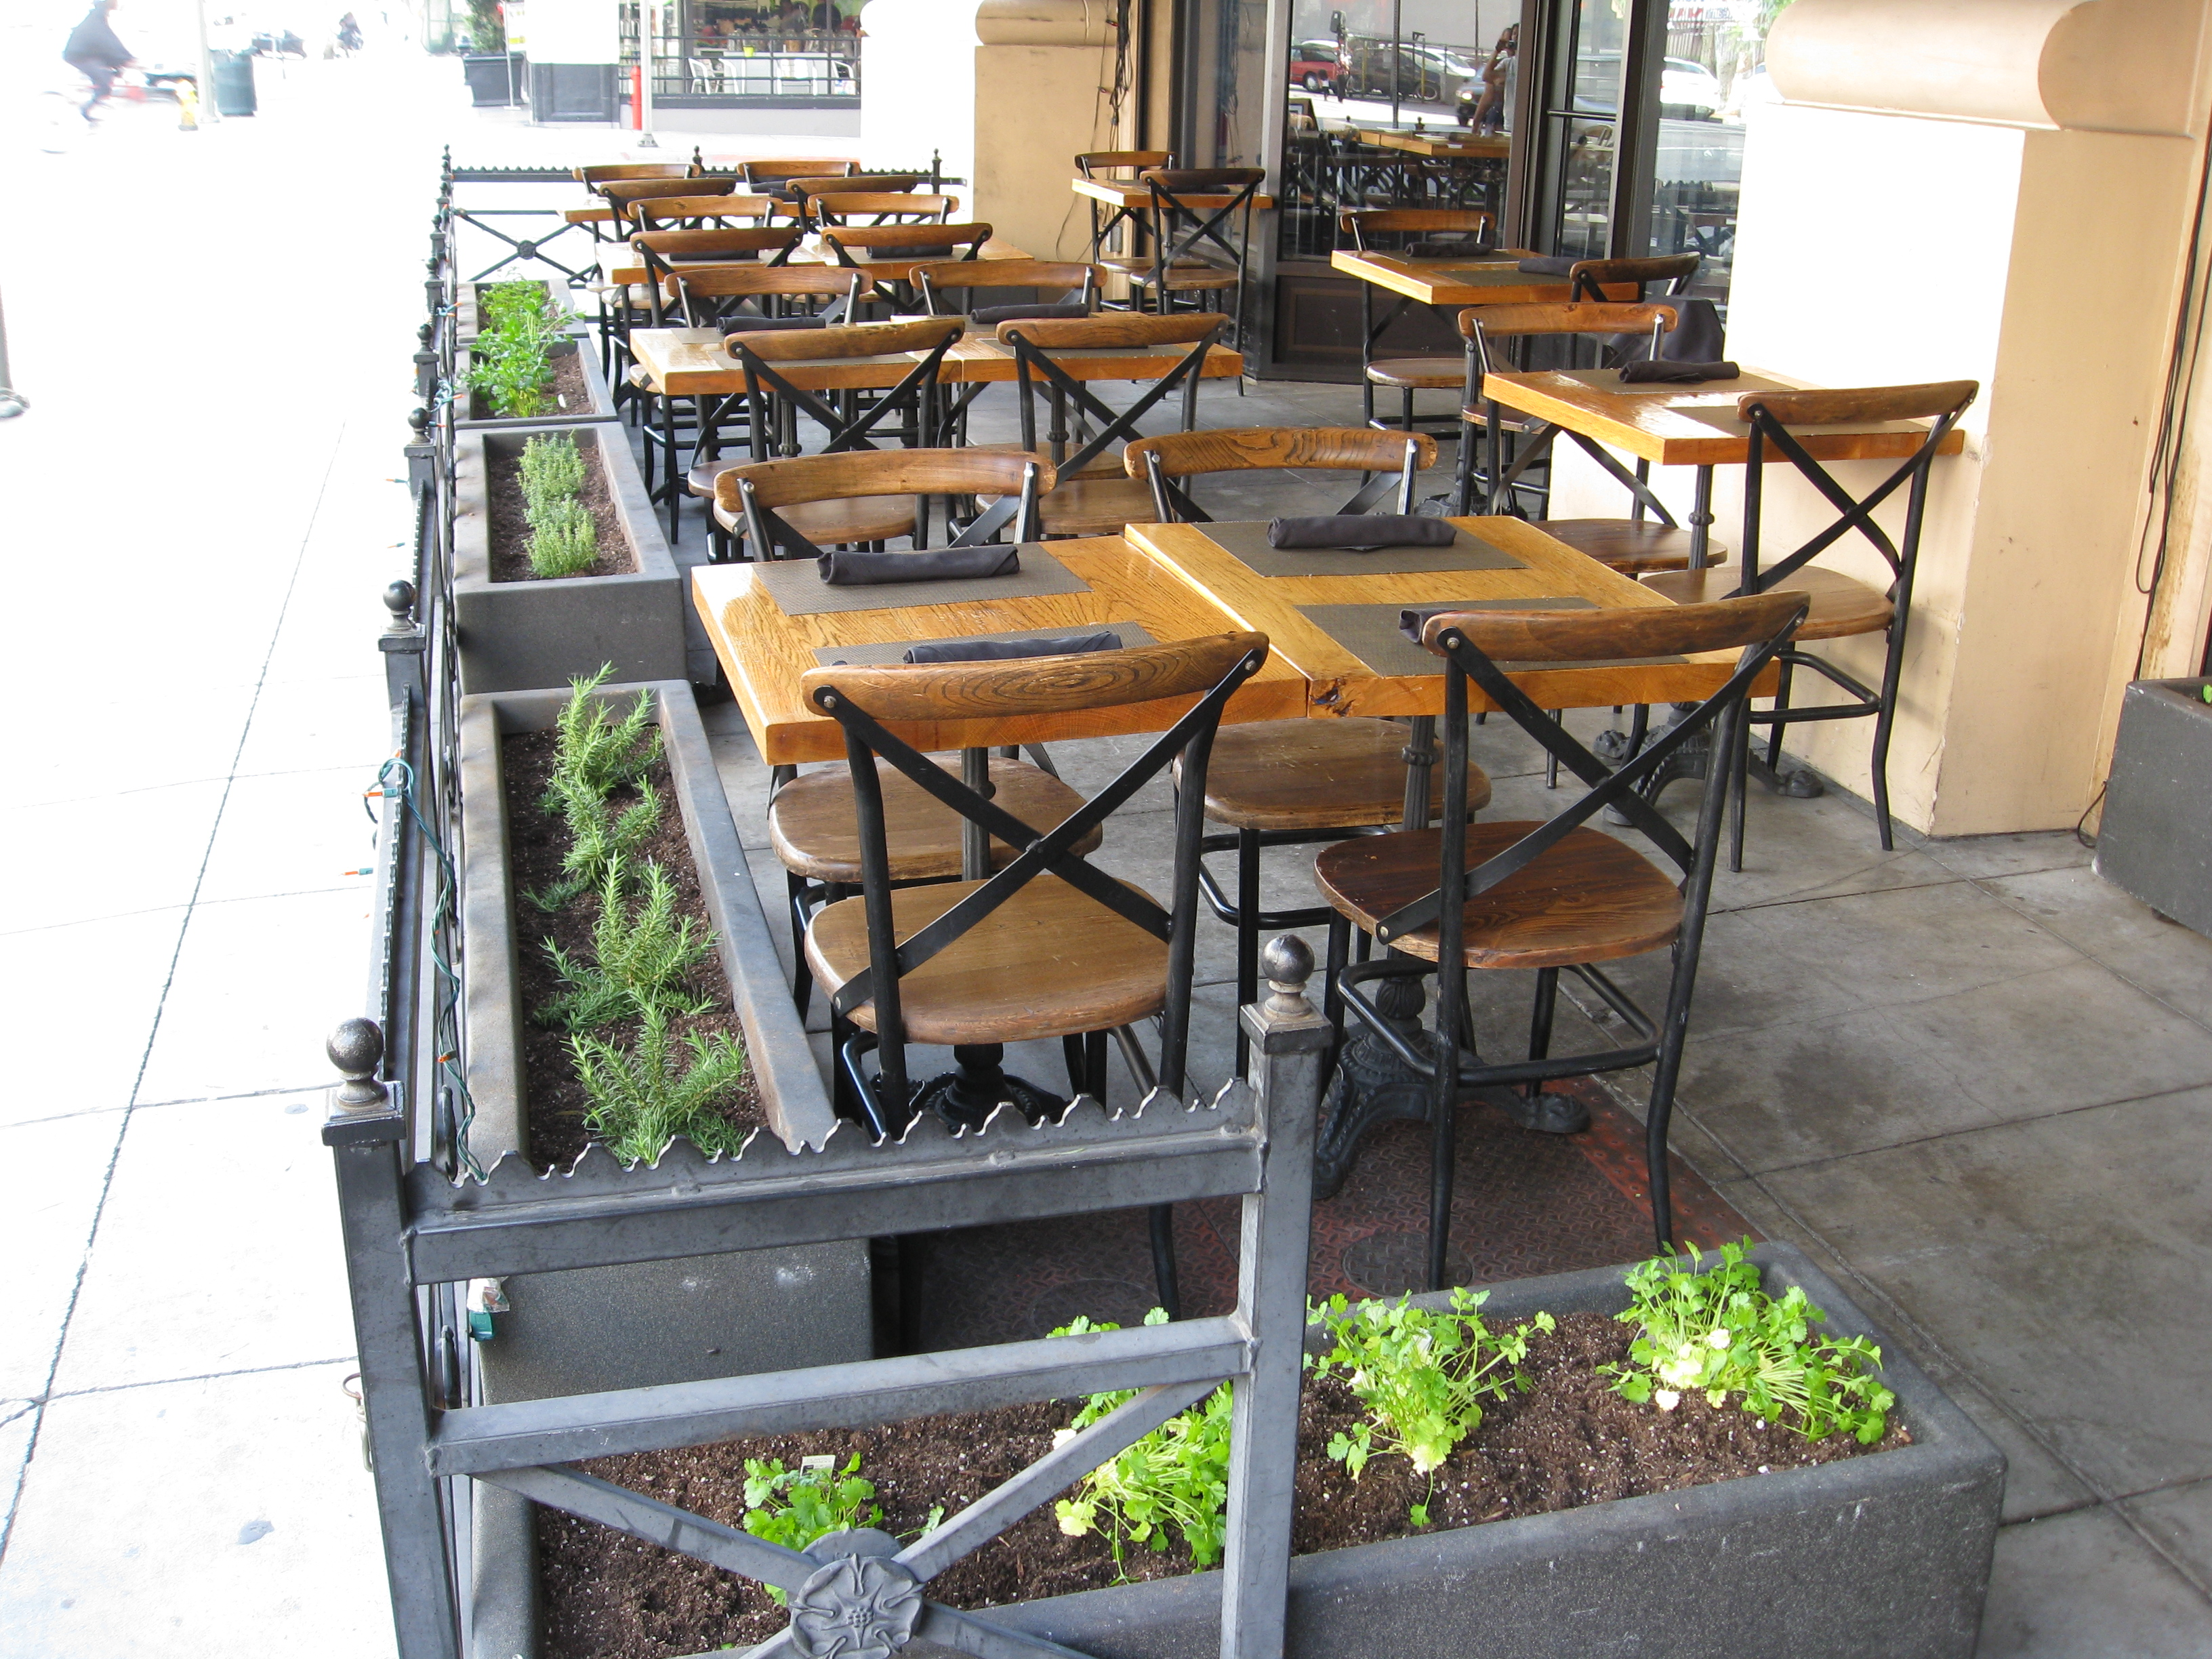 Patio Seating Is Now Surrounded By Herbs For Customers To Enjoy